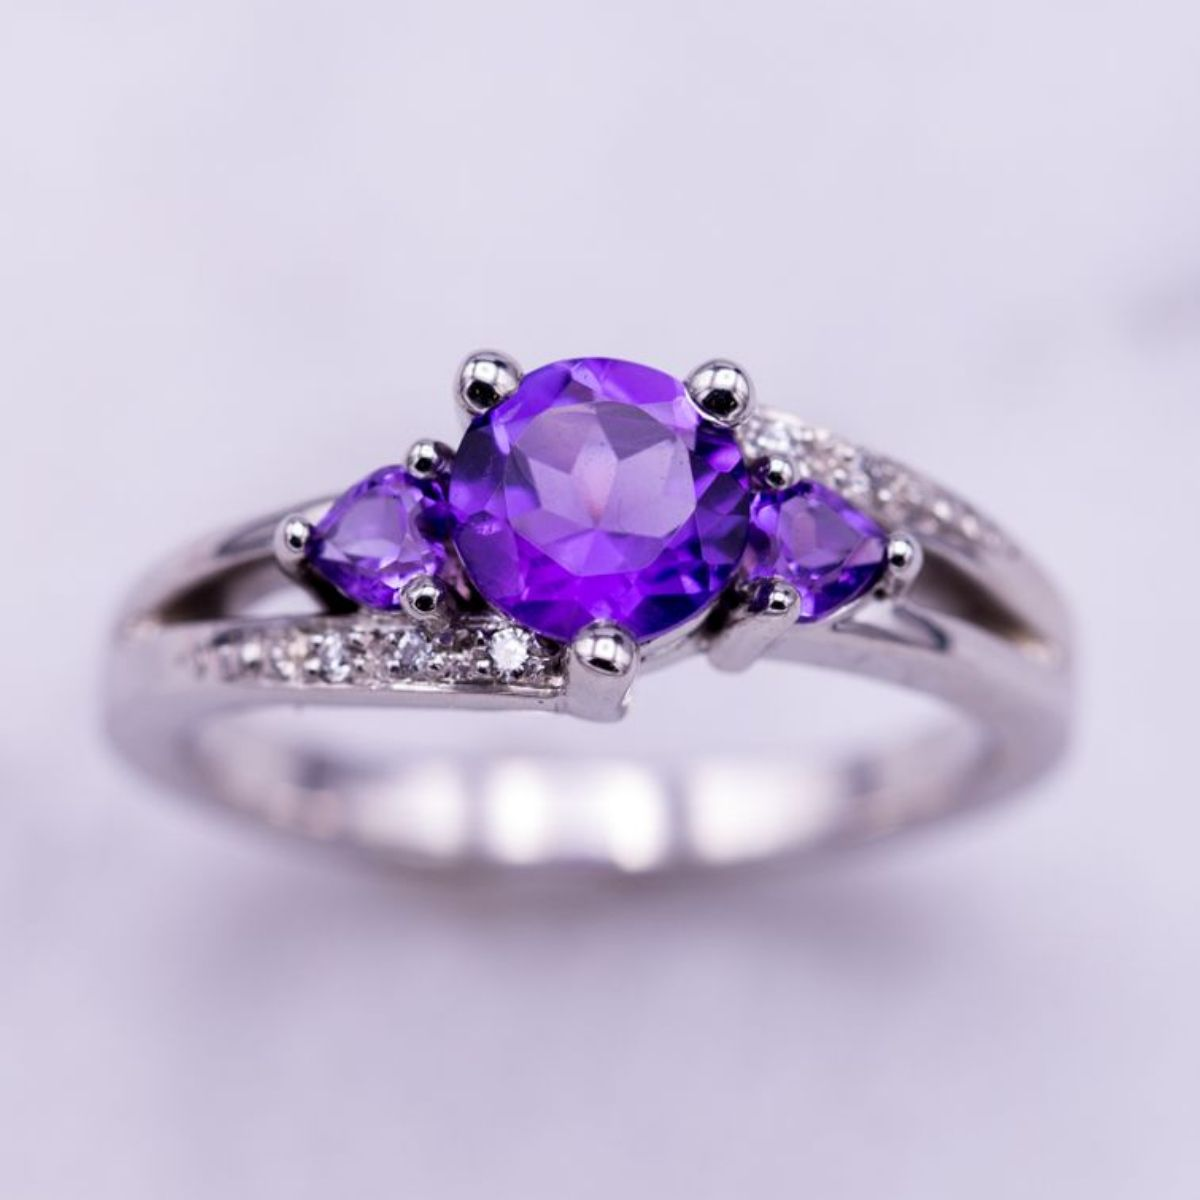 birthstone vintage diamond purple rings ring products rare engagement amethyst style asscher bridal earth jewelry or february cut halo anniversary